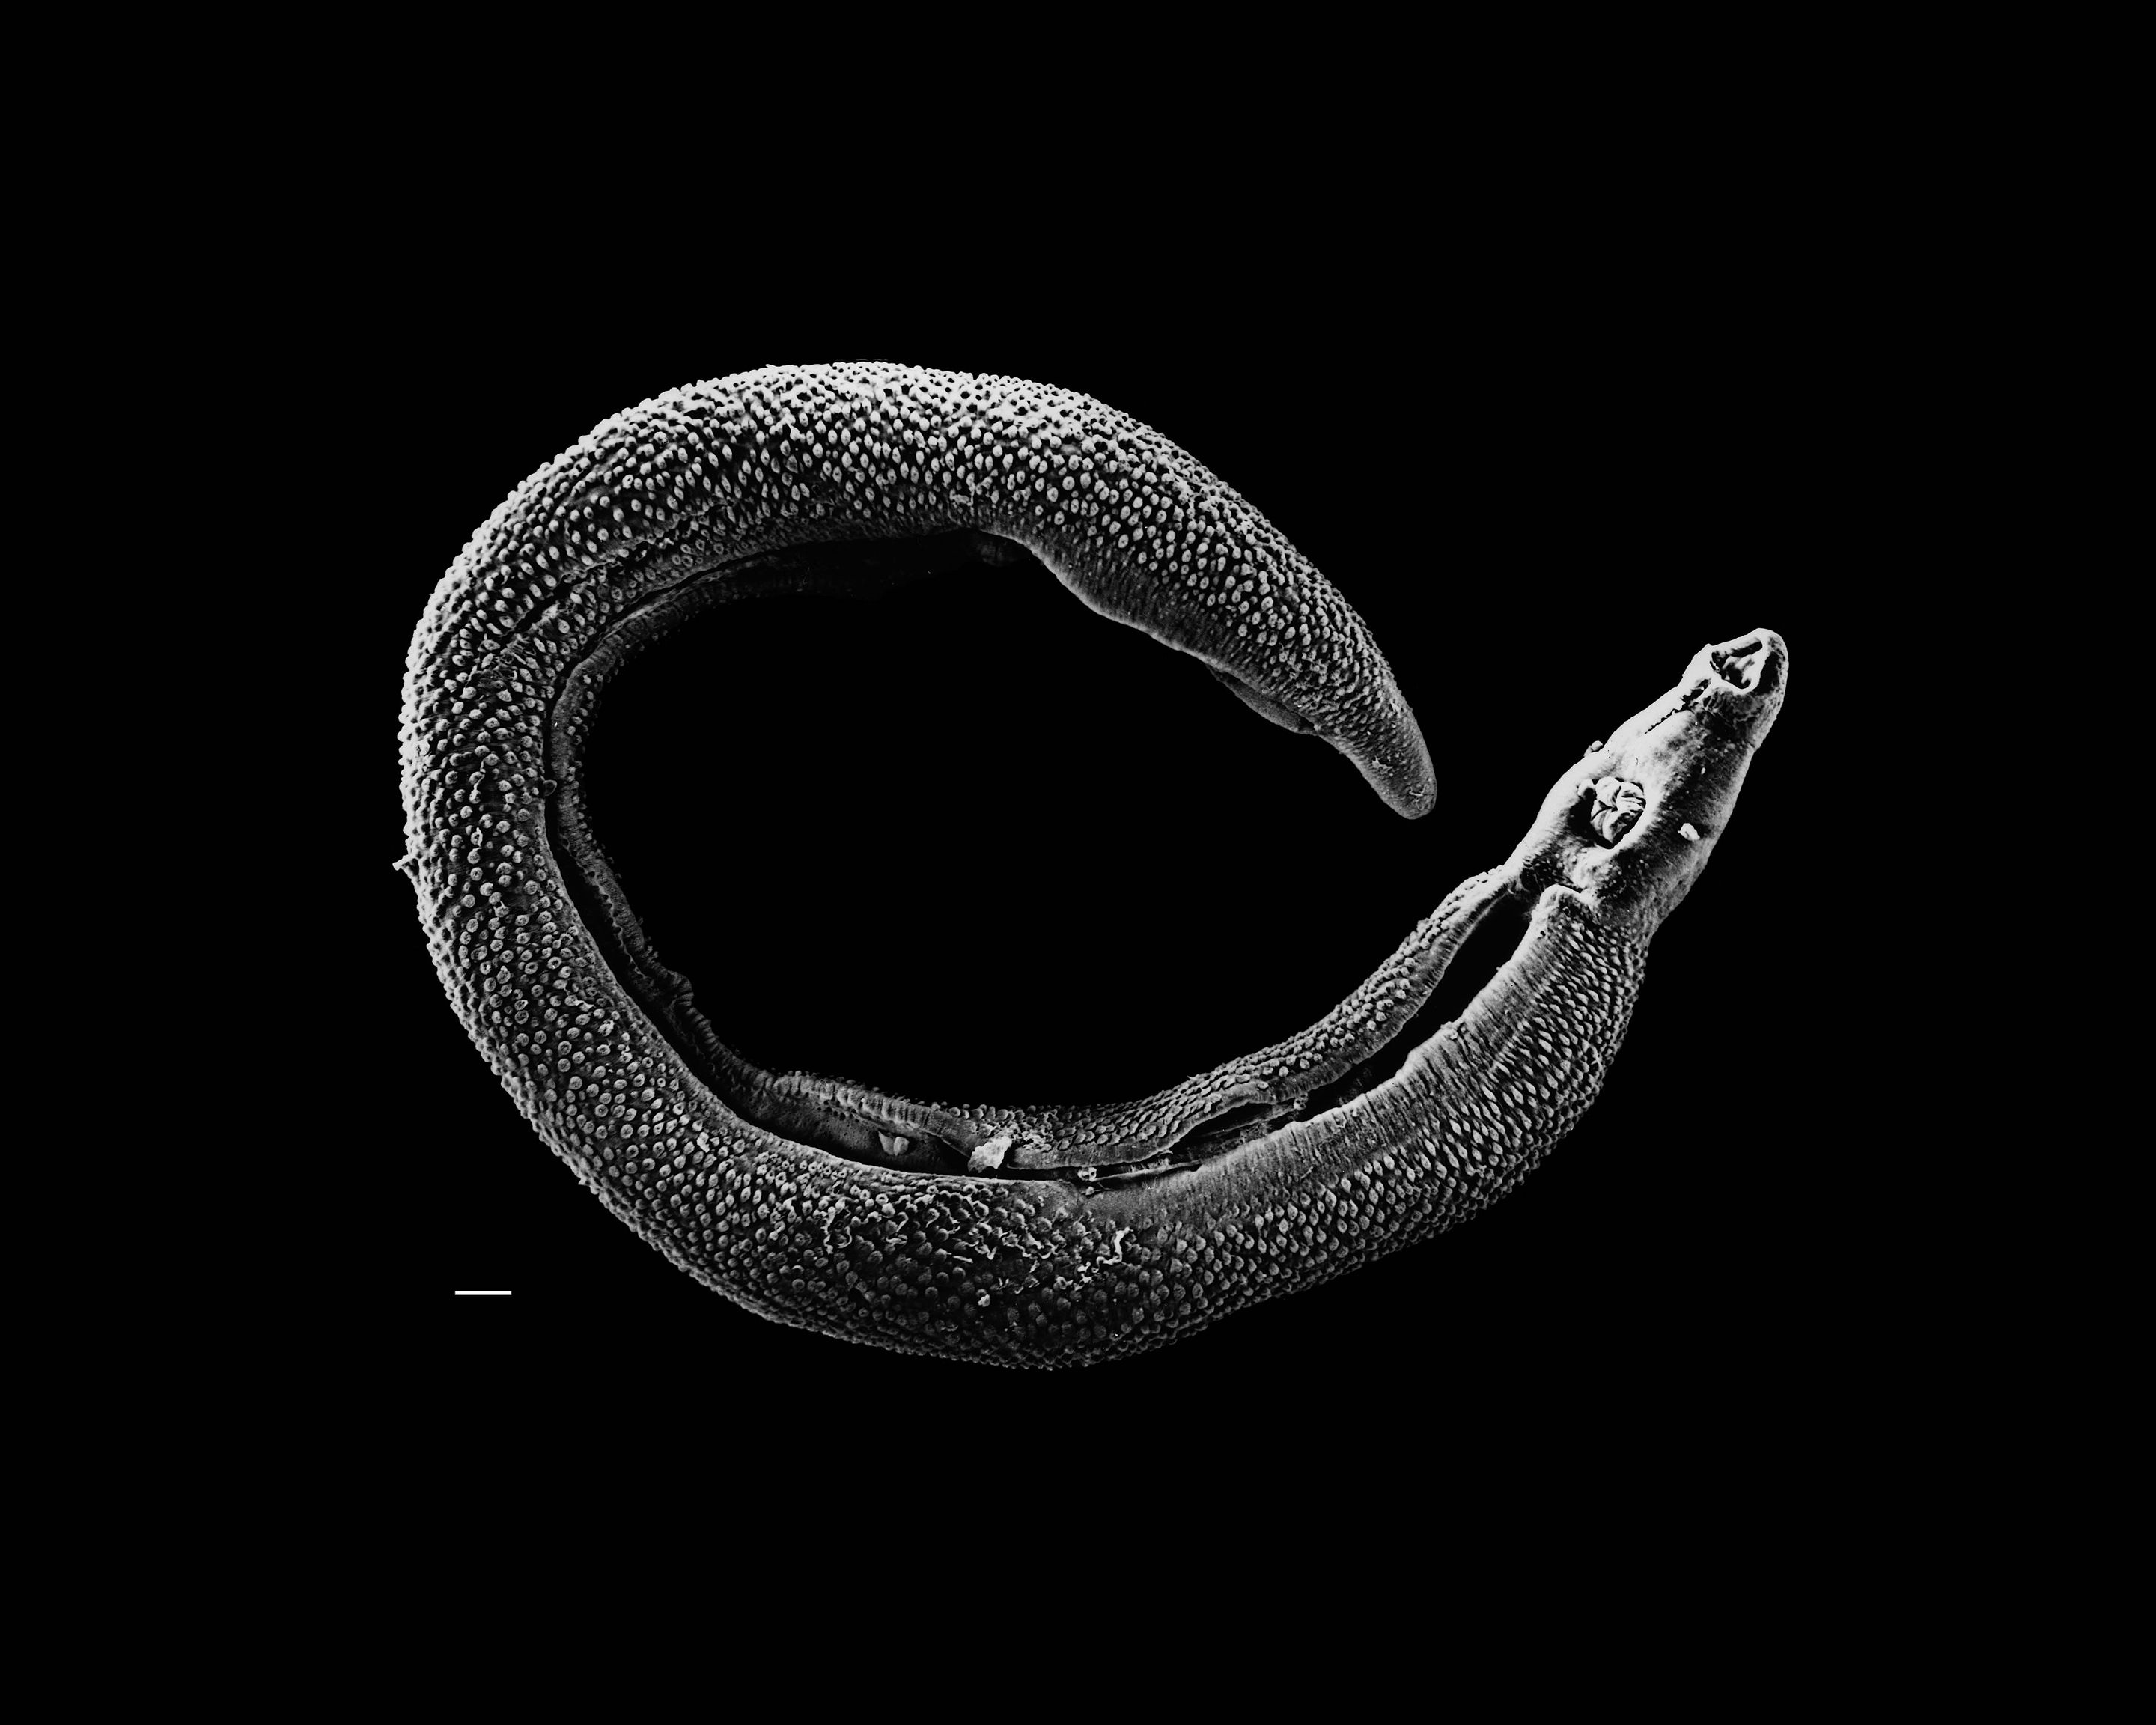 Electron micrograph of an adult male Schistosoma parasite worm. The bar (bottom left) represents a magnification of 500 μm.